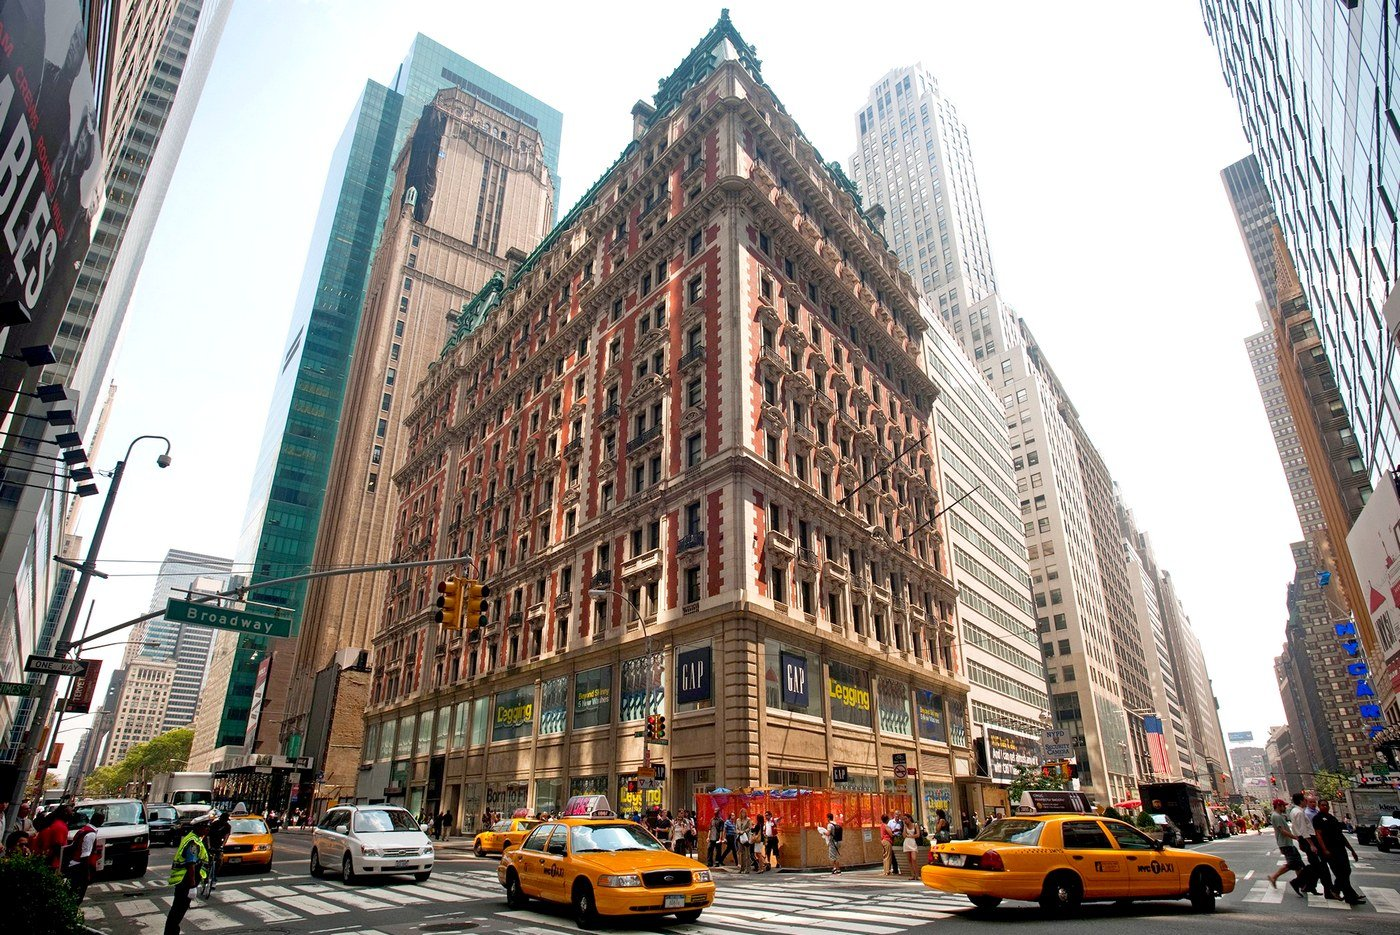 Hotels In Central Square Ny